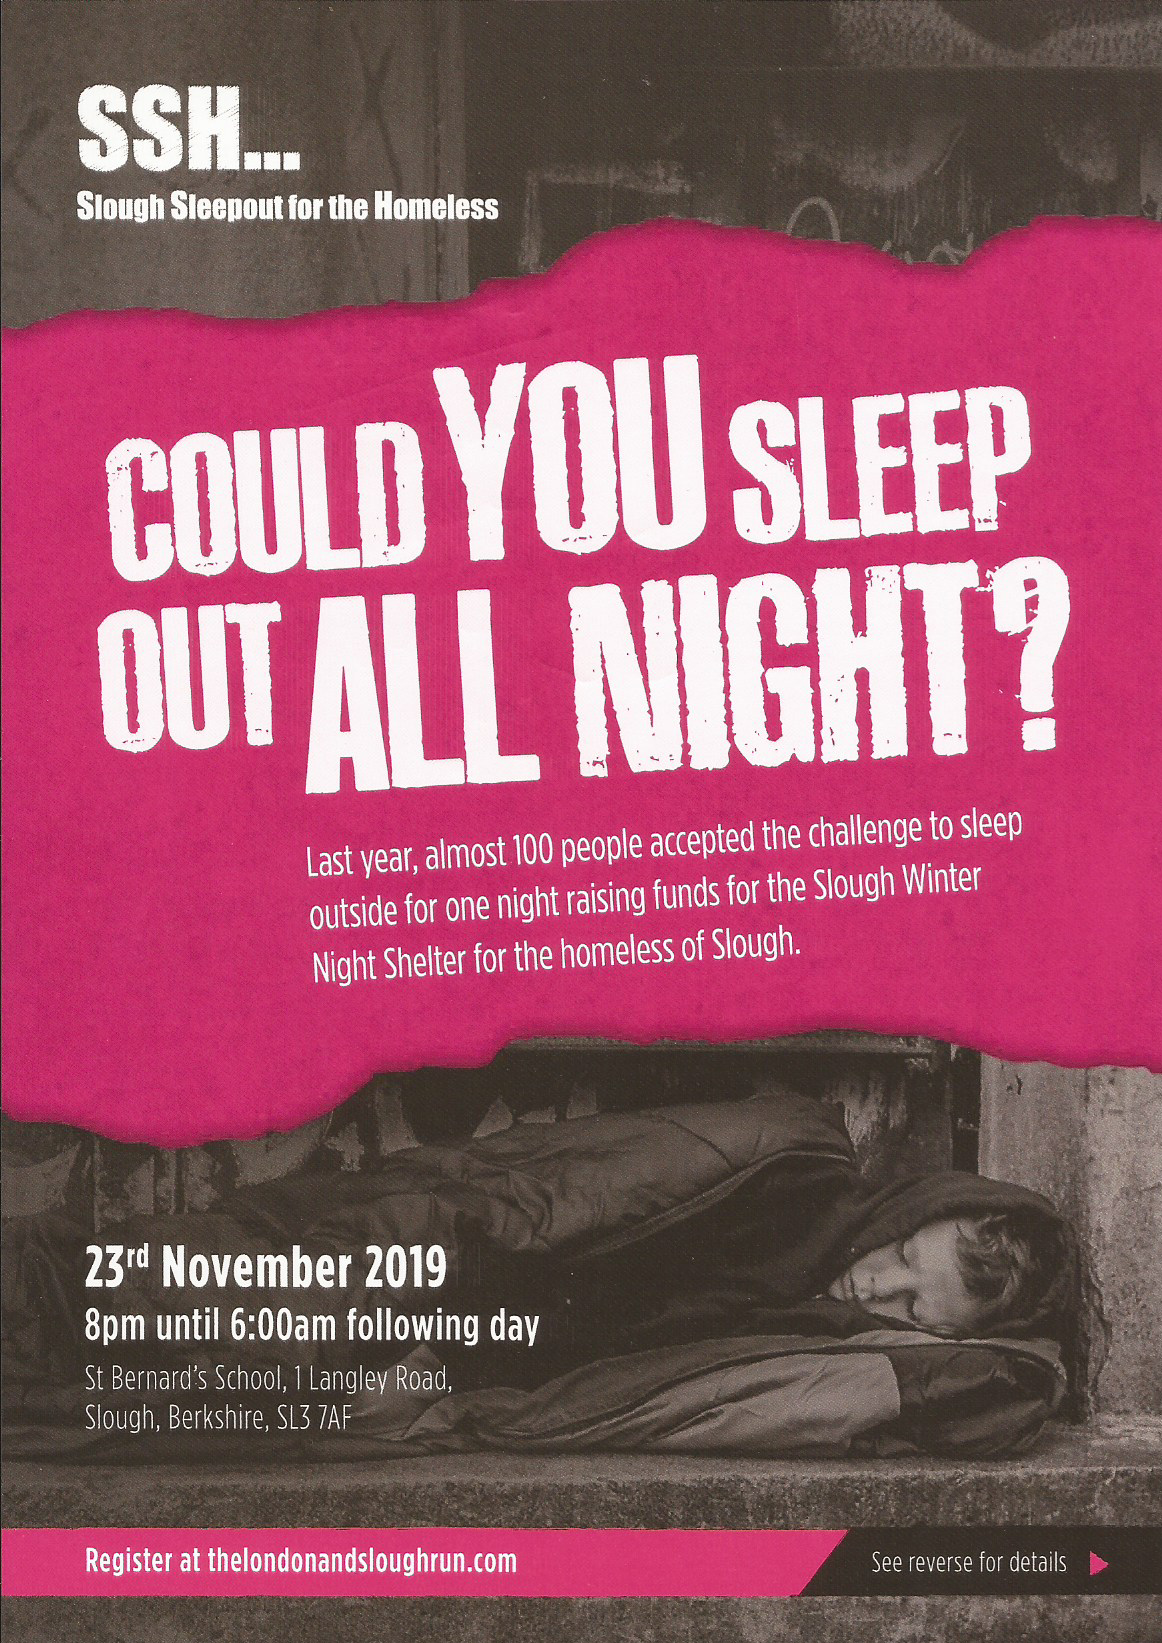 Slough Sleepout for the Homeless page 1